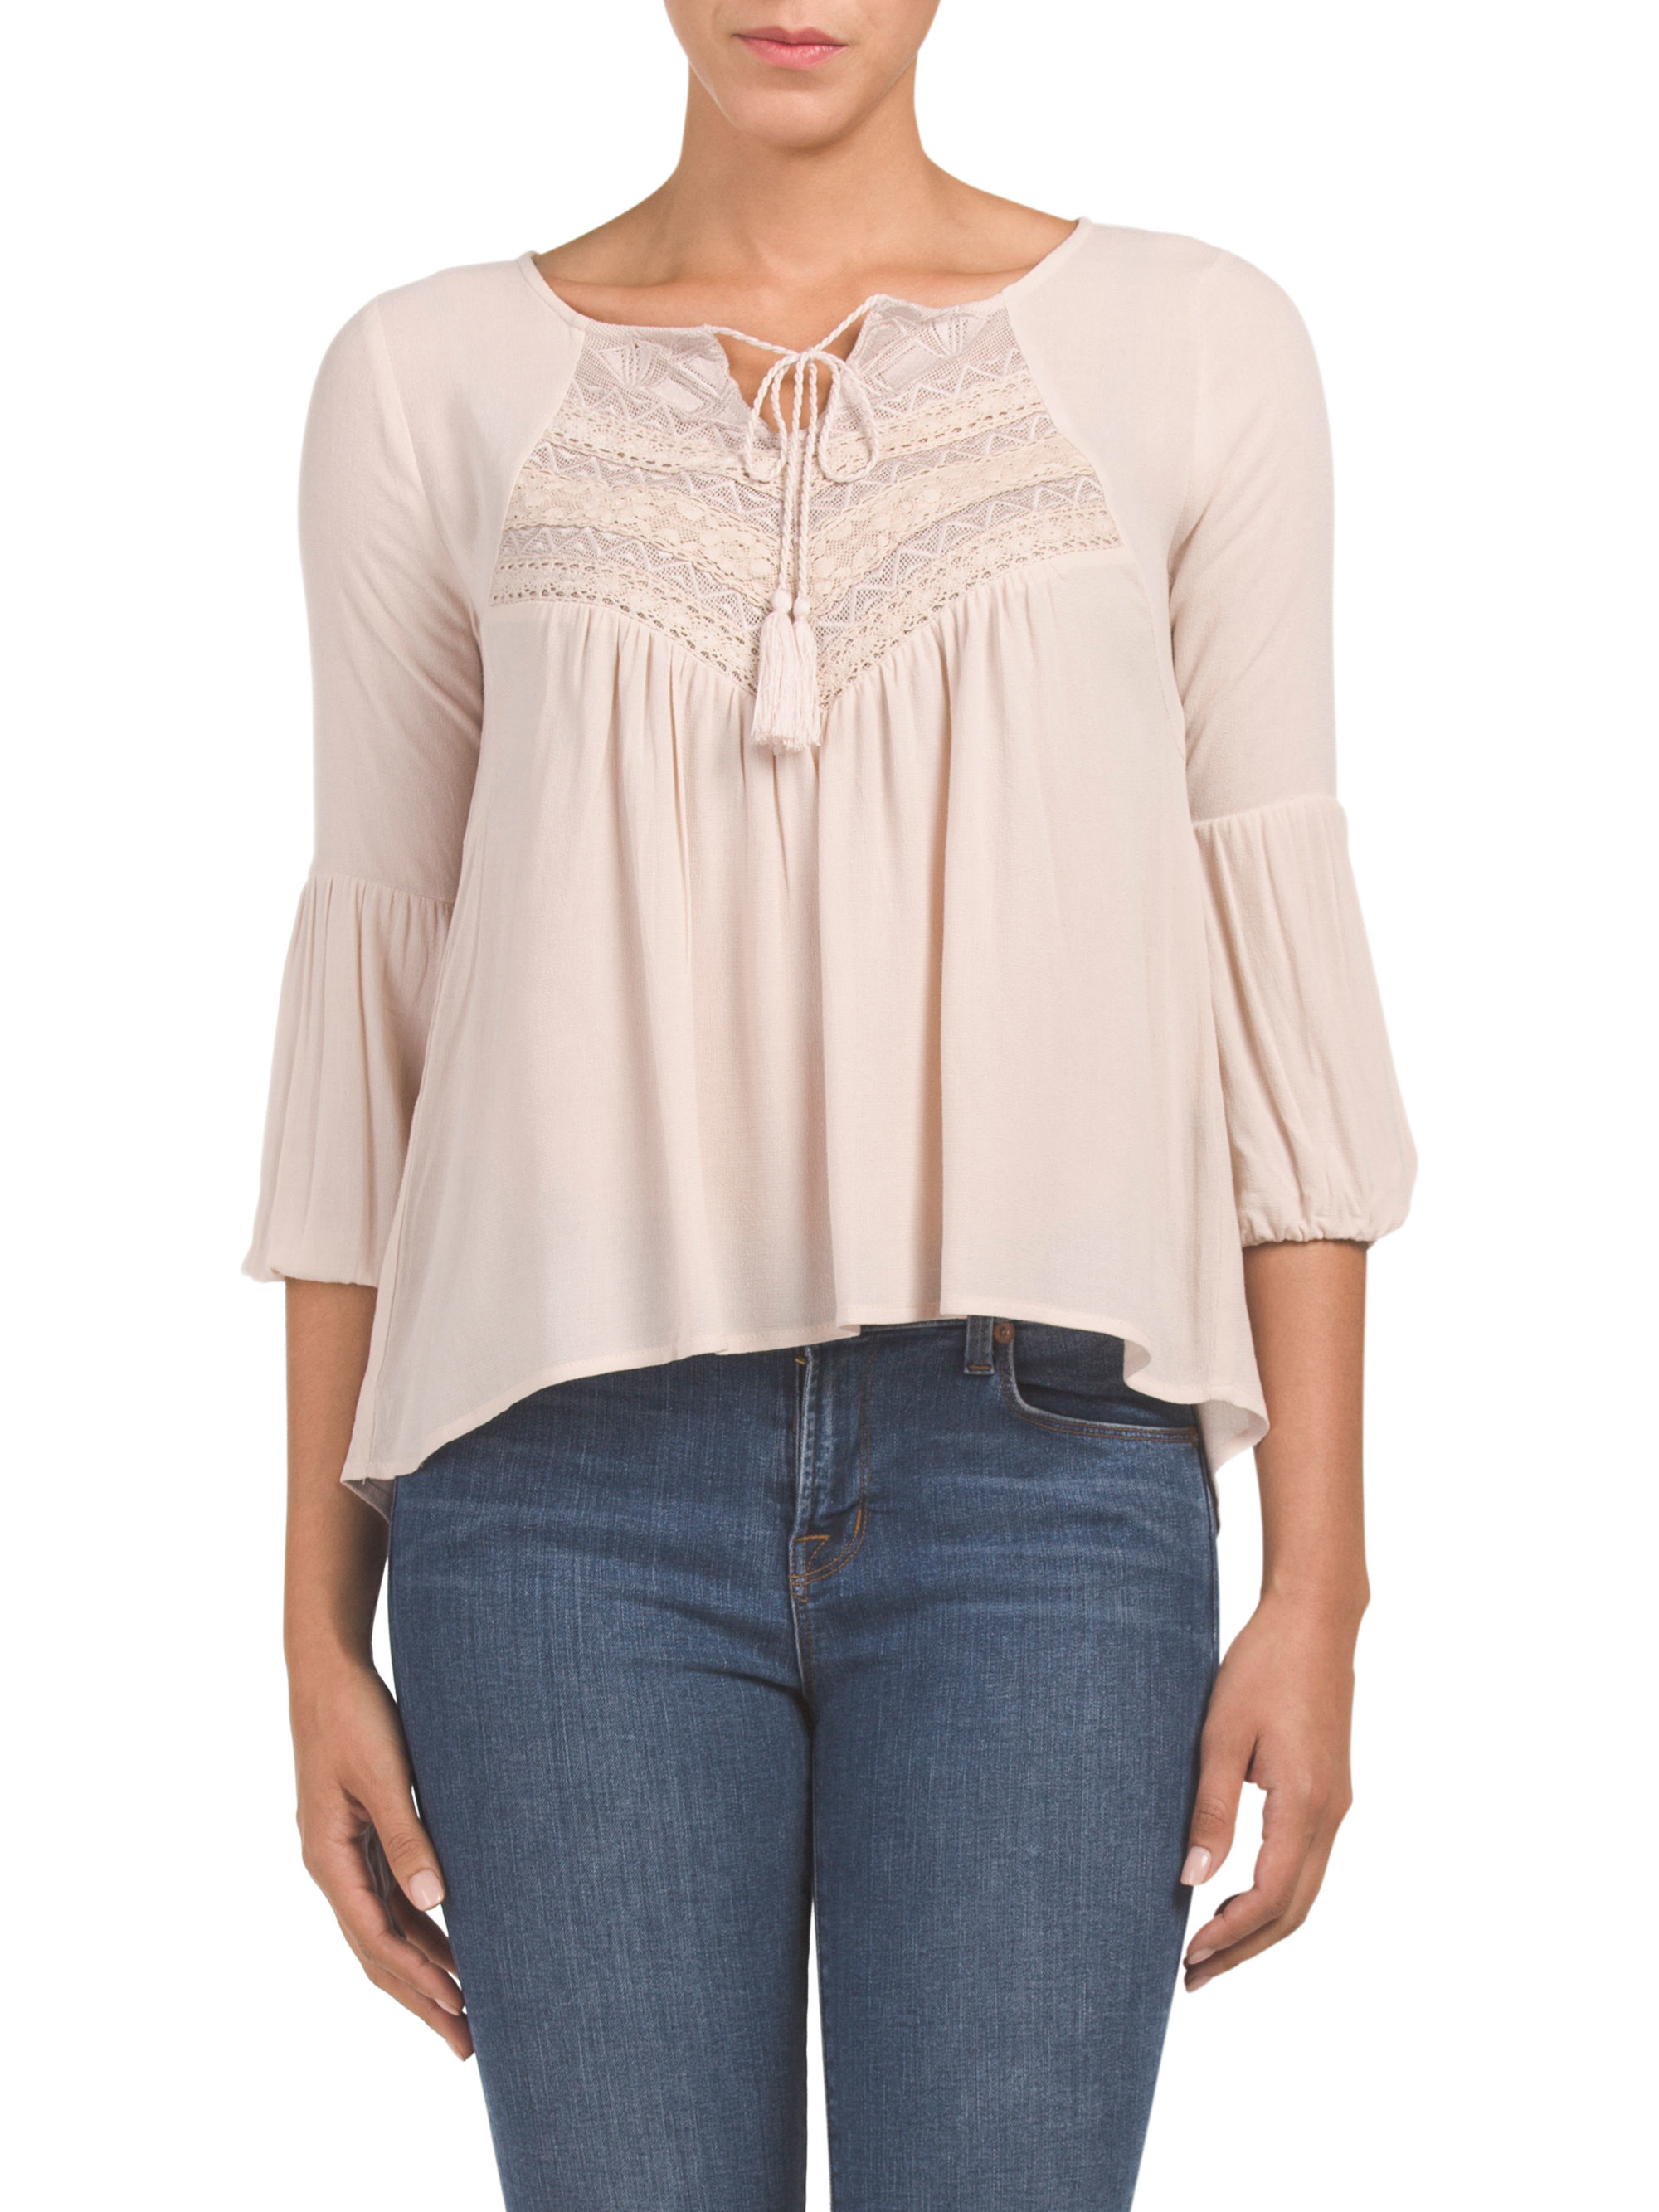 Tj maxx embroidered tassel front blouse in pink lyst for Tj maxx t shirts